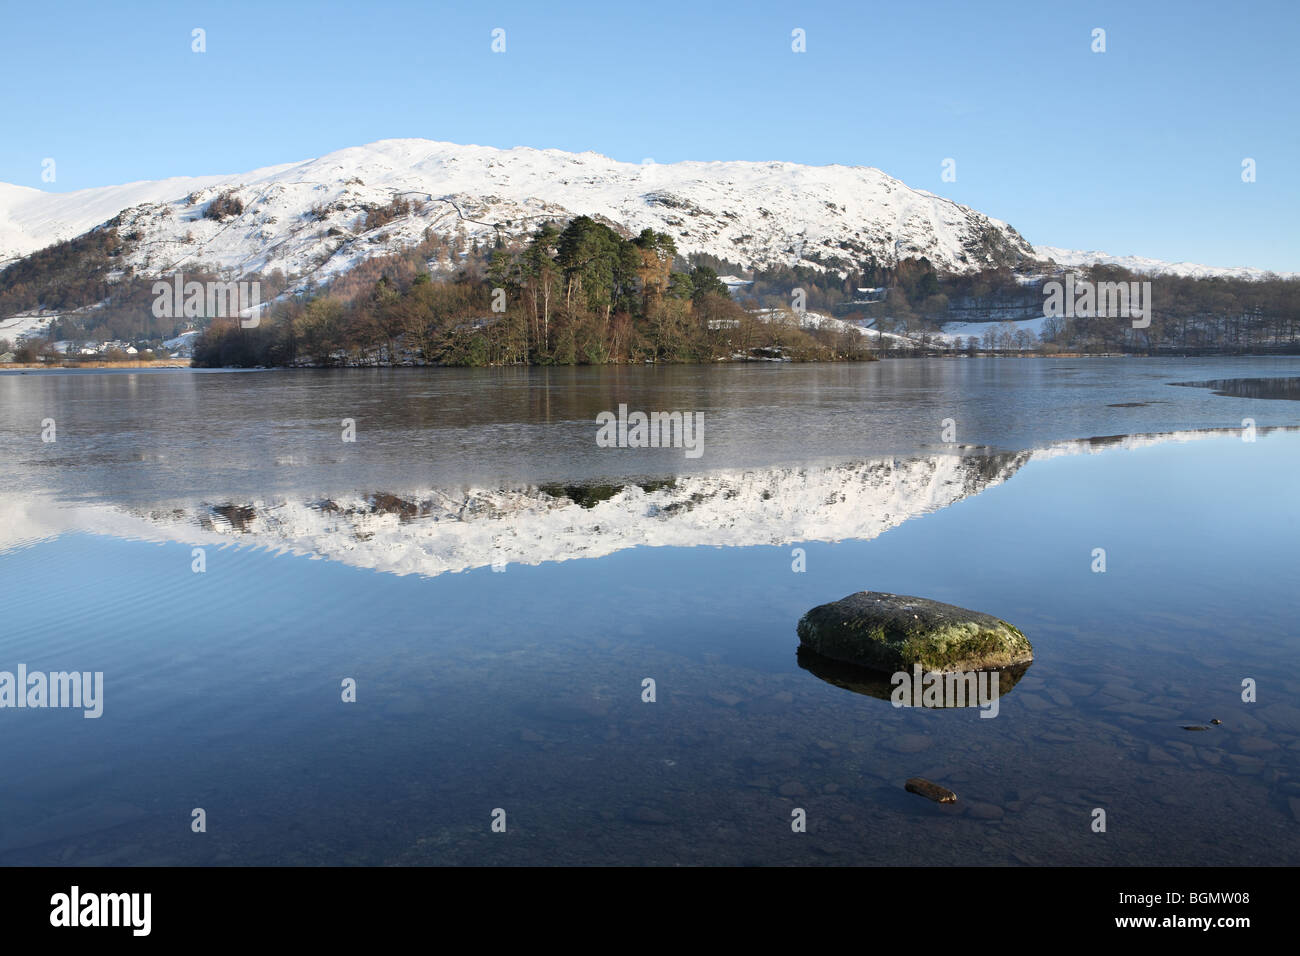 Grasmere with snow clad mountains reflected in the lake, Cumbria, UK - Stock Image